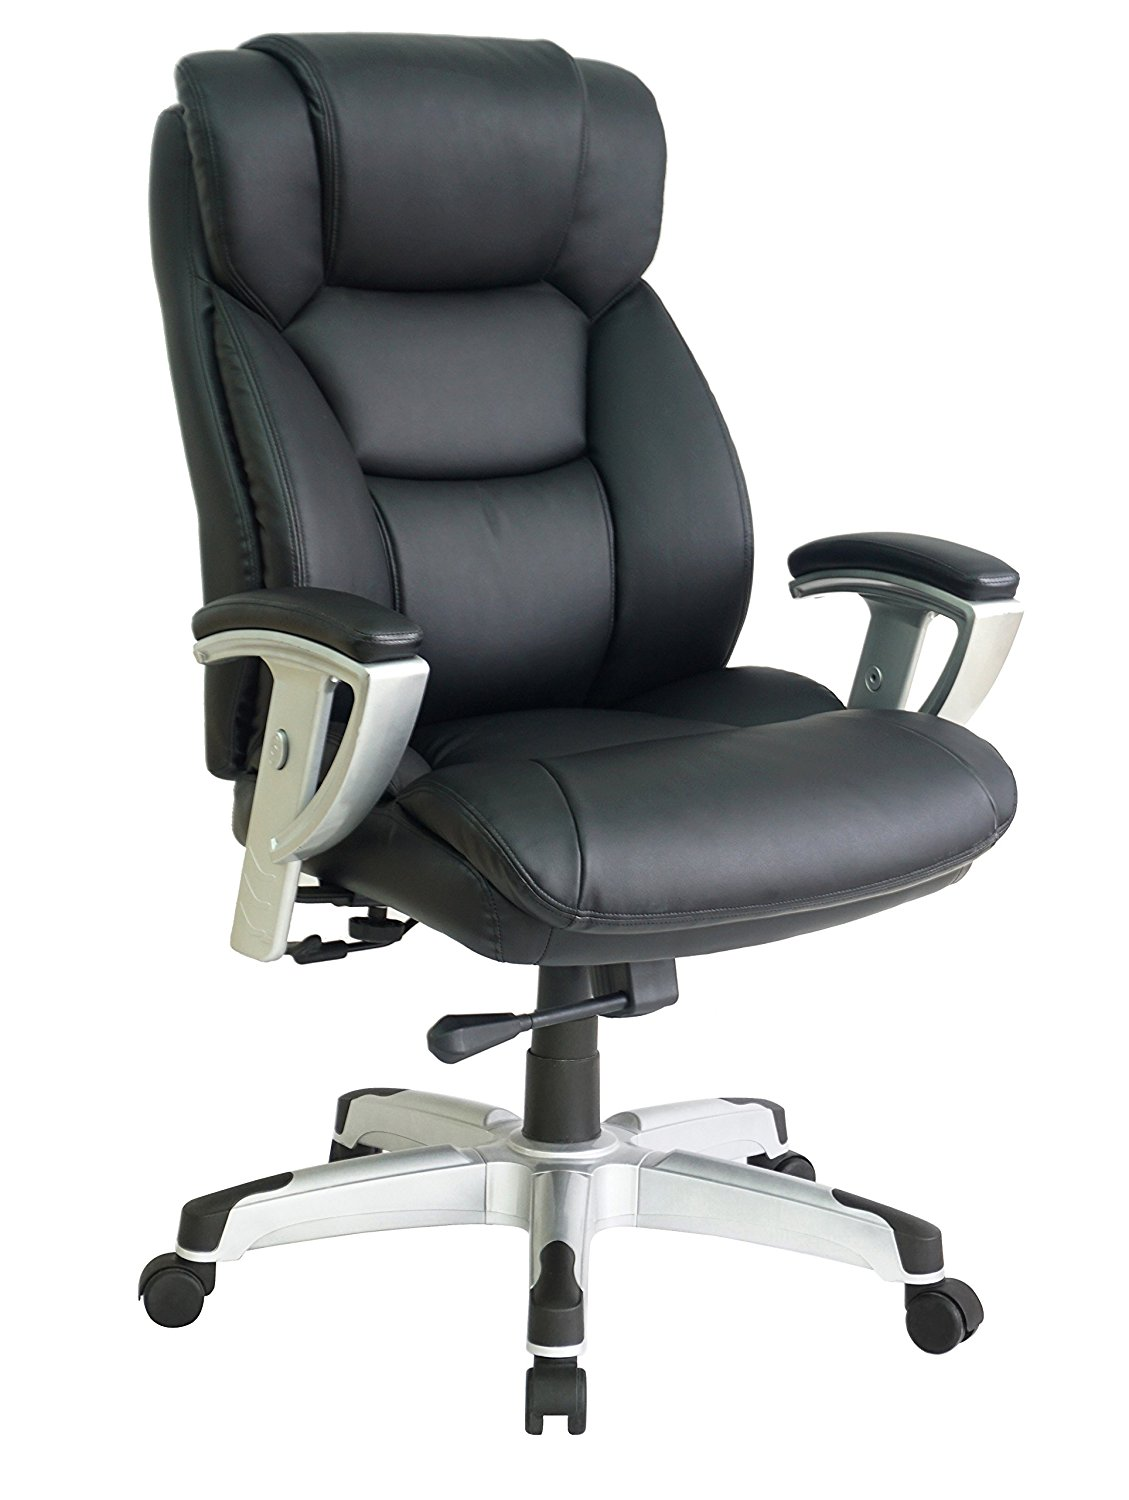 400 Lb Capacity Executive Office Chair For Heavy People